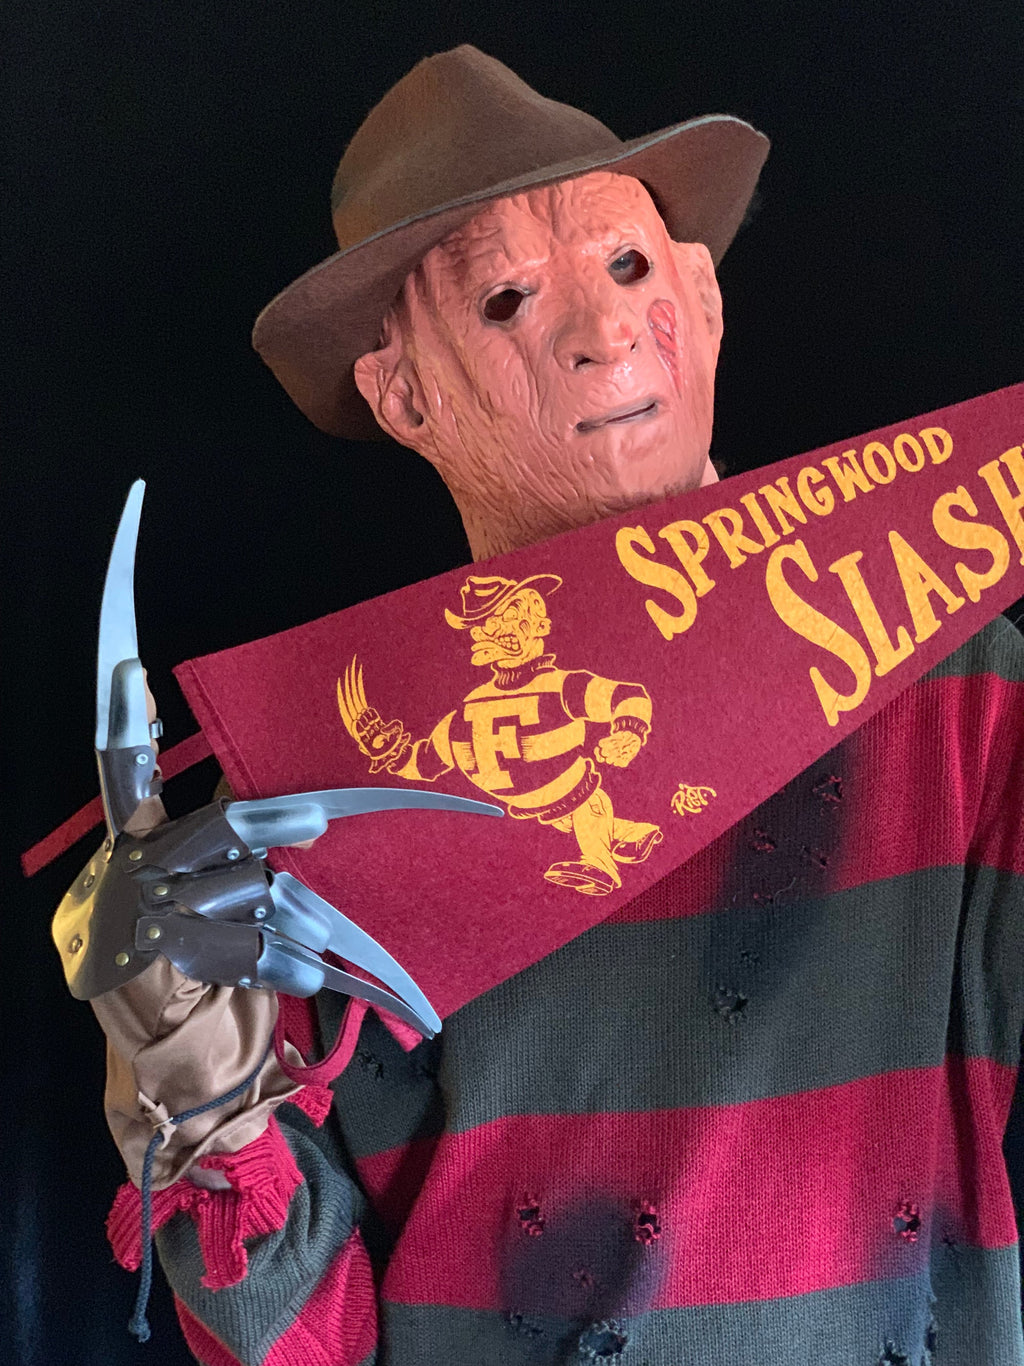 Springwood Slasher Pennant